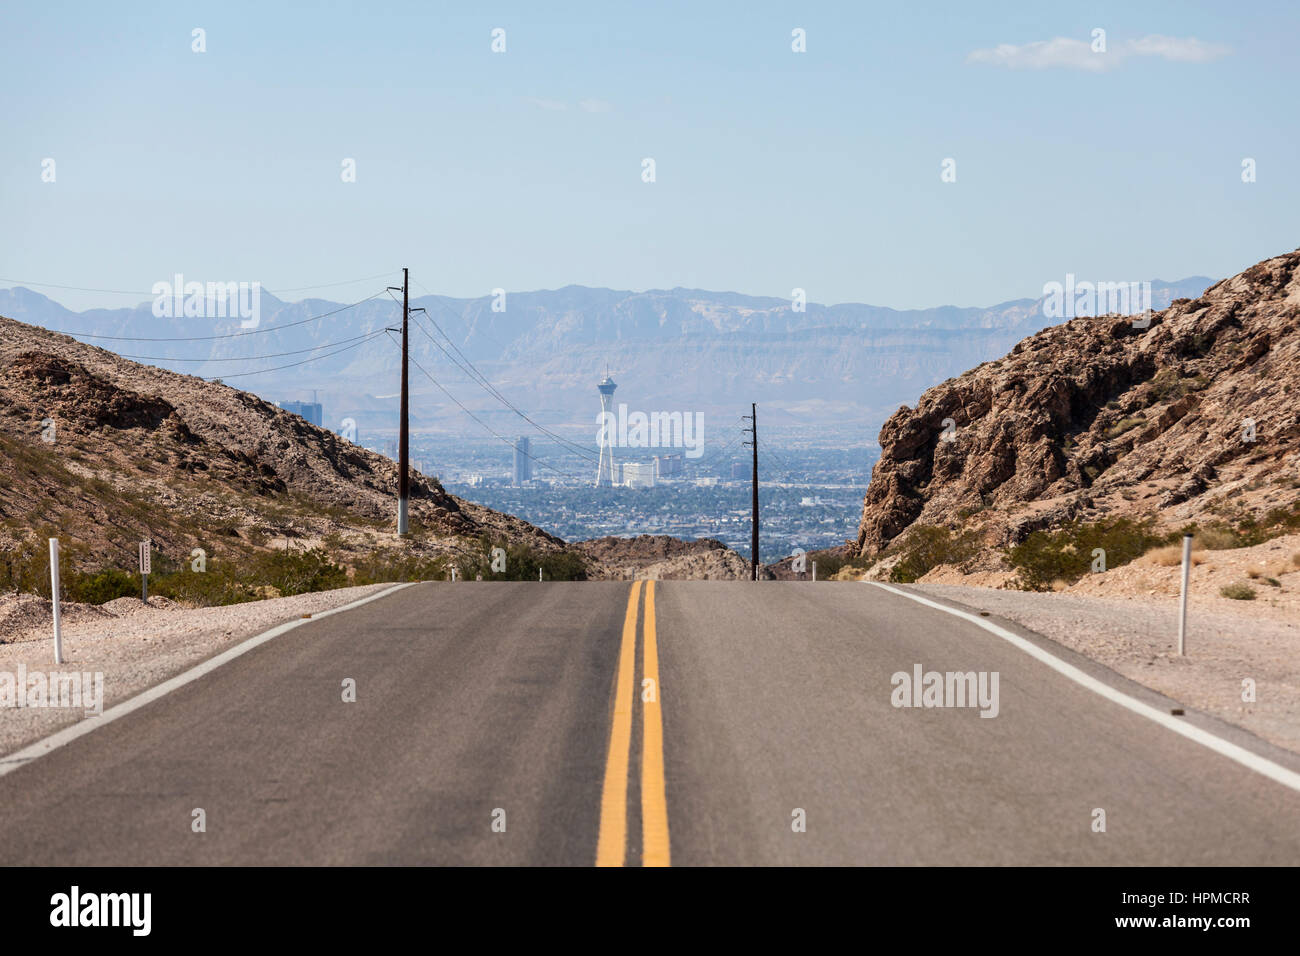 Desert road to the Stratosphere resort and the Las Vegas strip. - Stock Image